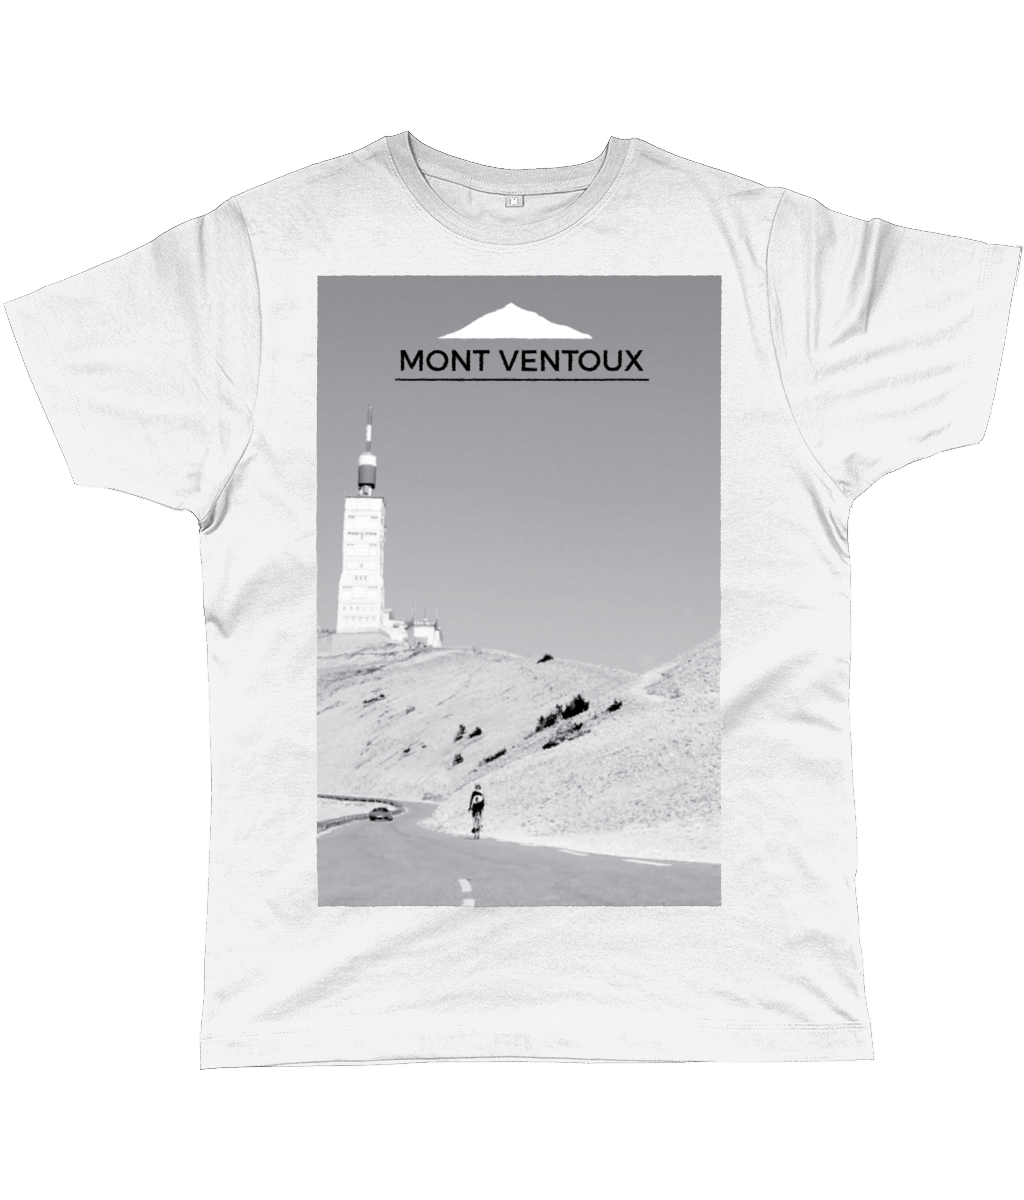 5907fd80a Mont Ventoux Cycling T-Shirt - Summit Finish